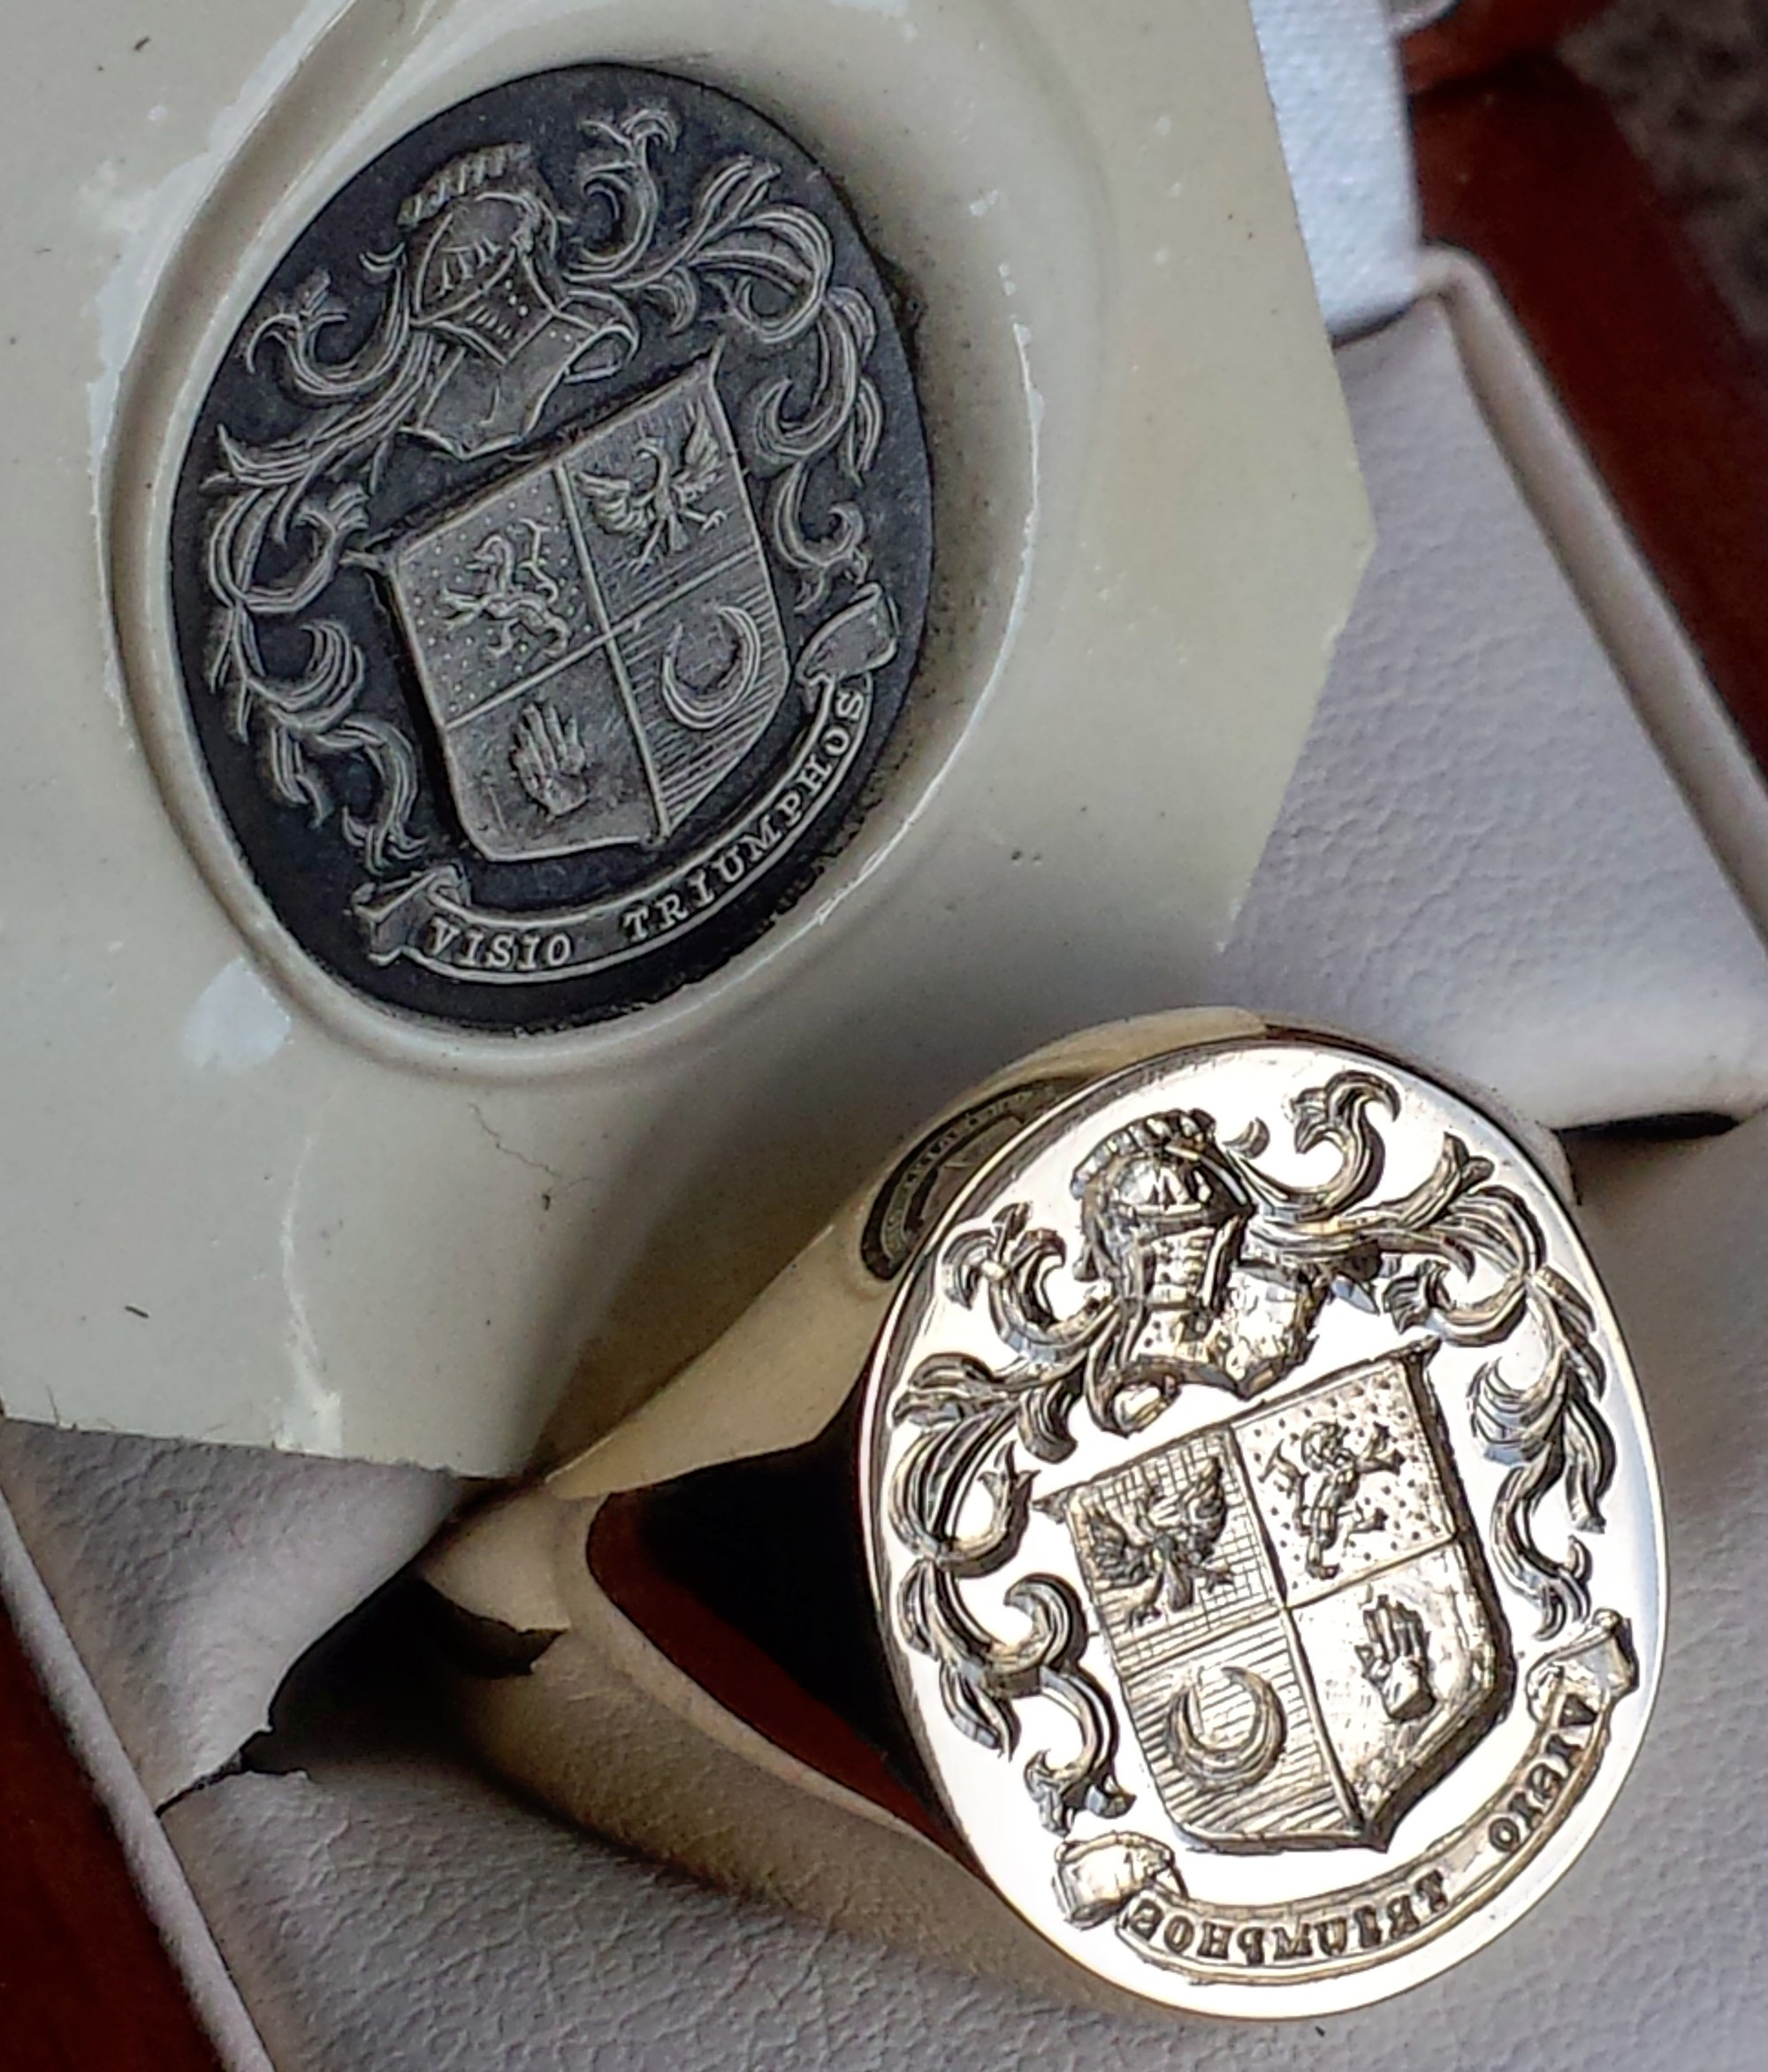 9ct yellow gold 16x20mm Oxford Bull signet ring with a full coat of arms seal engraved in reverse complete with wax impression.